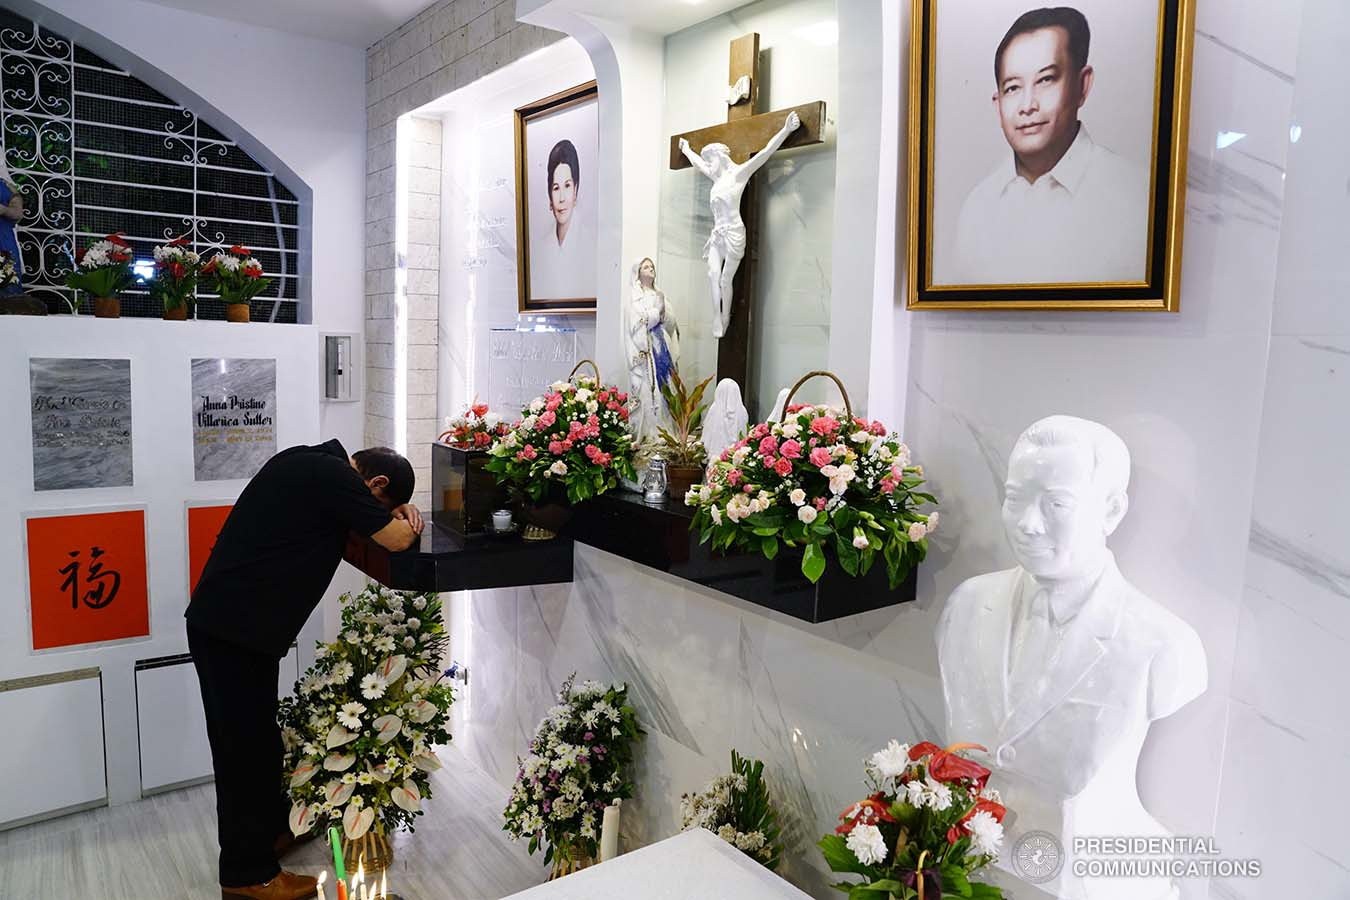 President Rodrigo Roa Duterte takes a solemn moment as he visits the grave of his mother Soledad at the Roman Catholic Cemetery in Davao City on October 31, 2019. JOEY DALUMPINES/PRESIDENTIAL PHOTO